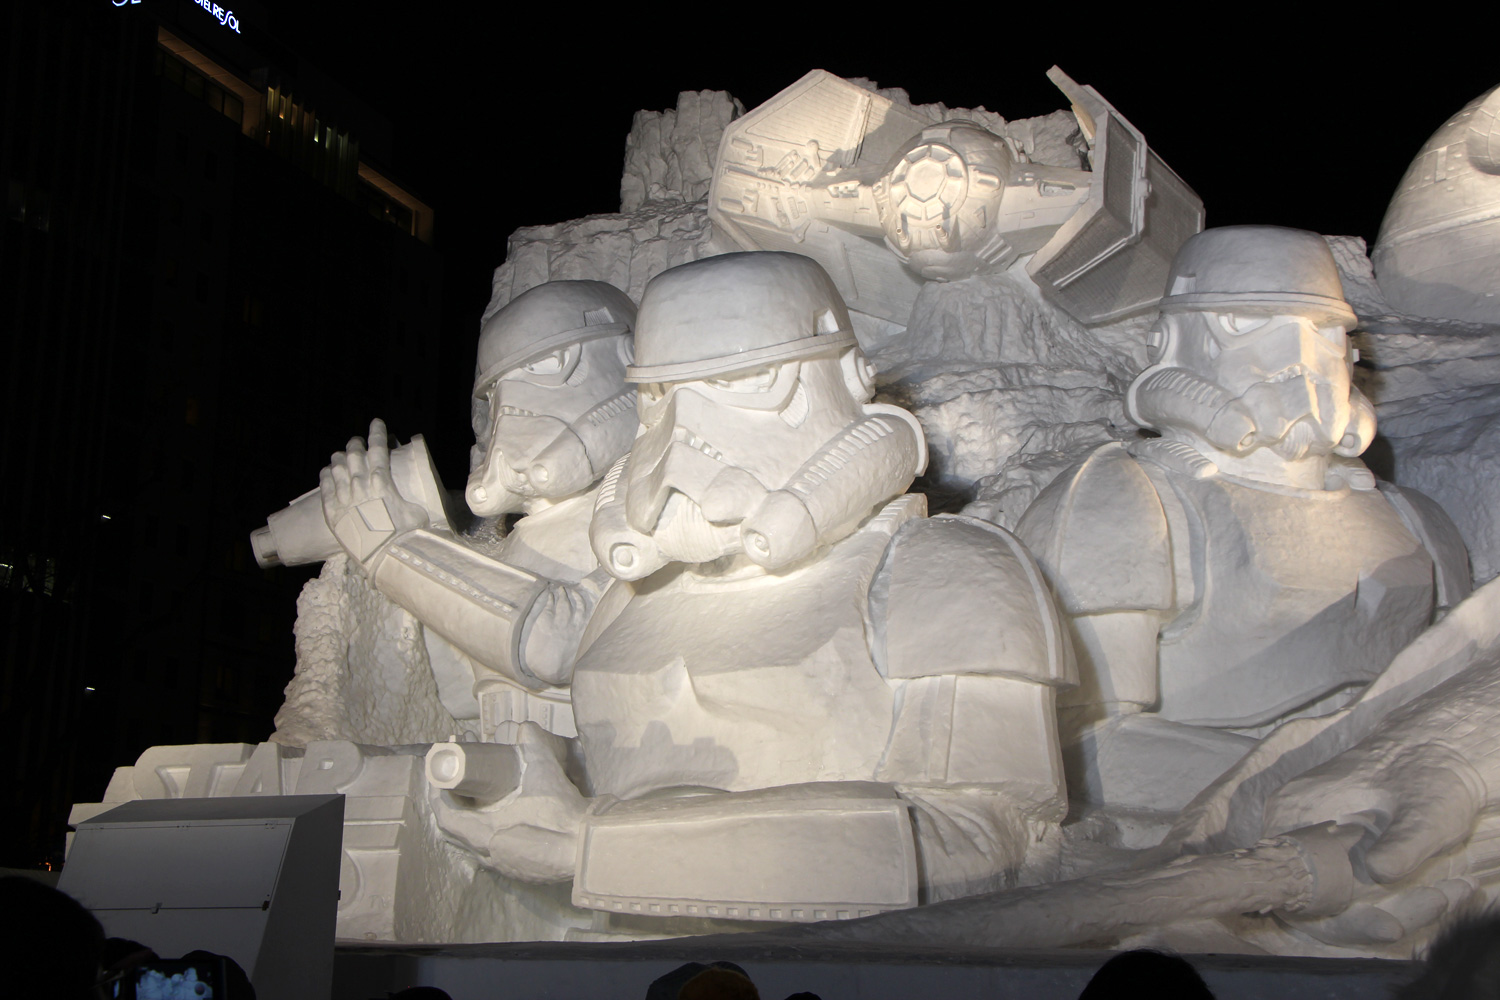 'Star Wars' snow sculpture in Japan/66th Sapporo Snow Festival